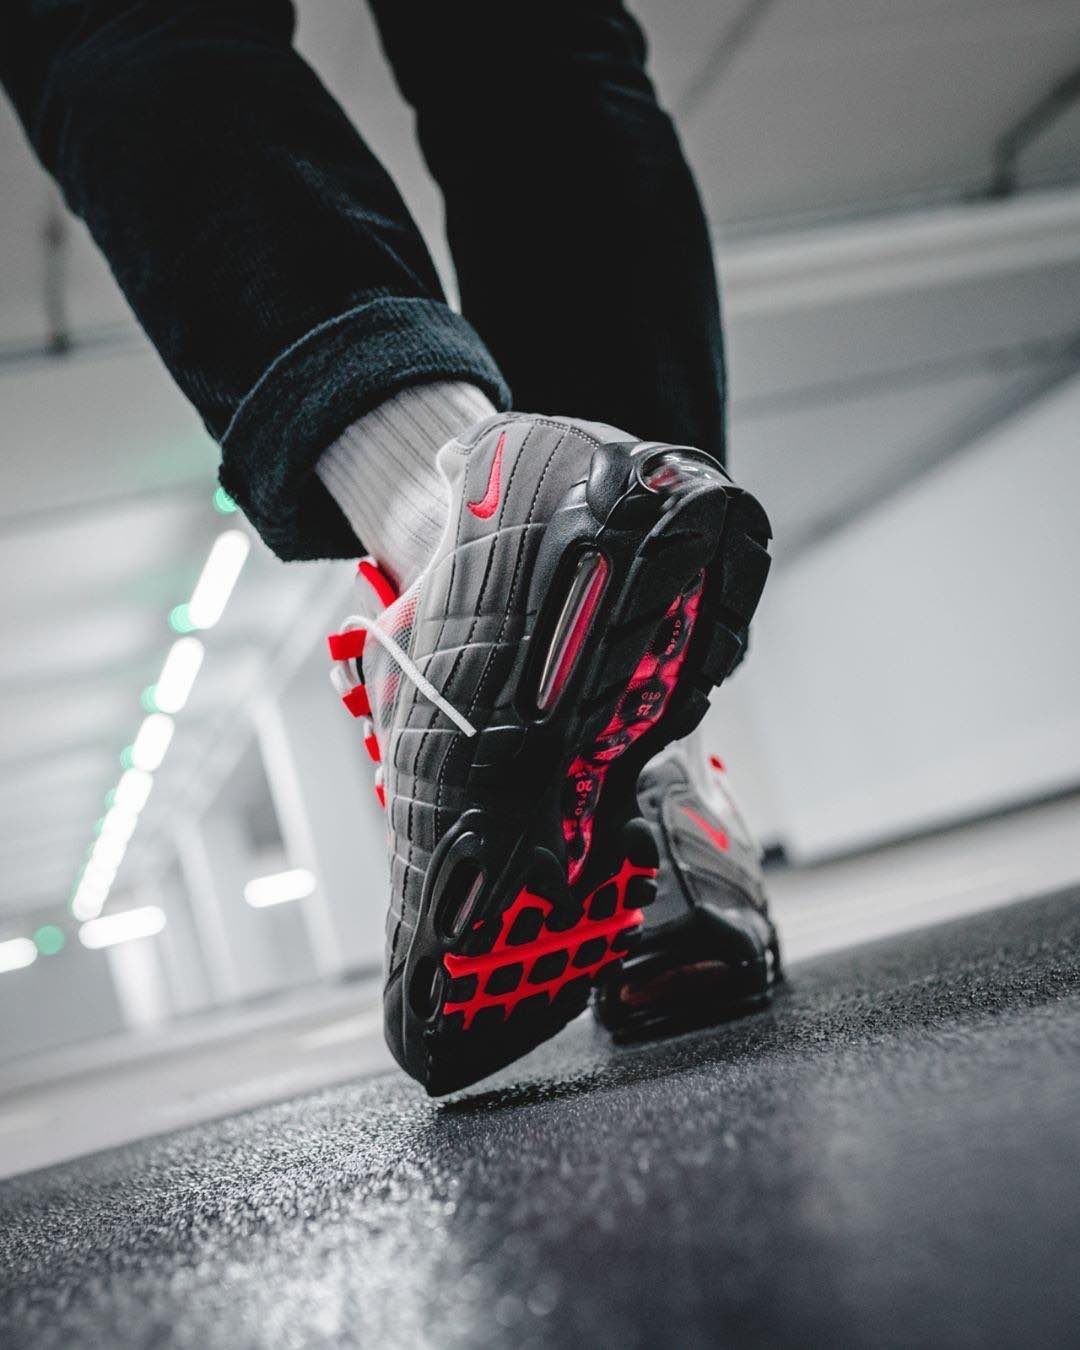 save off 1a259 7d60c Release Date  July 19, 2018 Nike Air Max 95 OG « Solar Red » Credit   Solebox — nike airmax airmax95 sneakerhead sneakersaddict sneakers  kicks ...